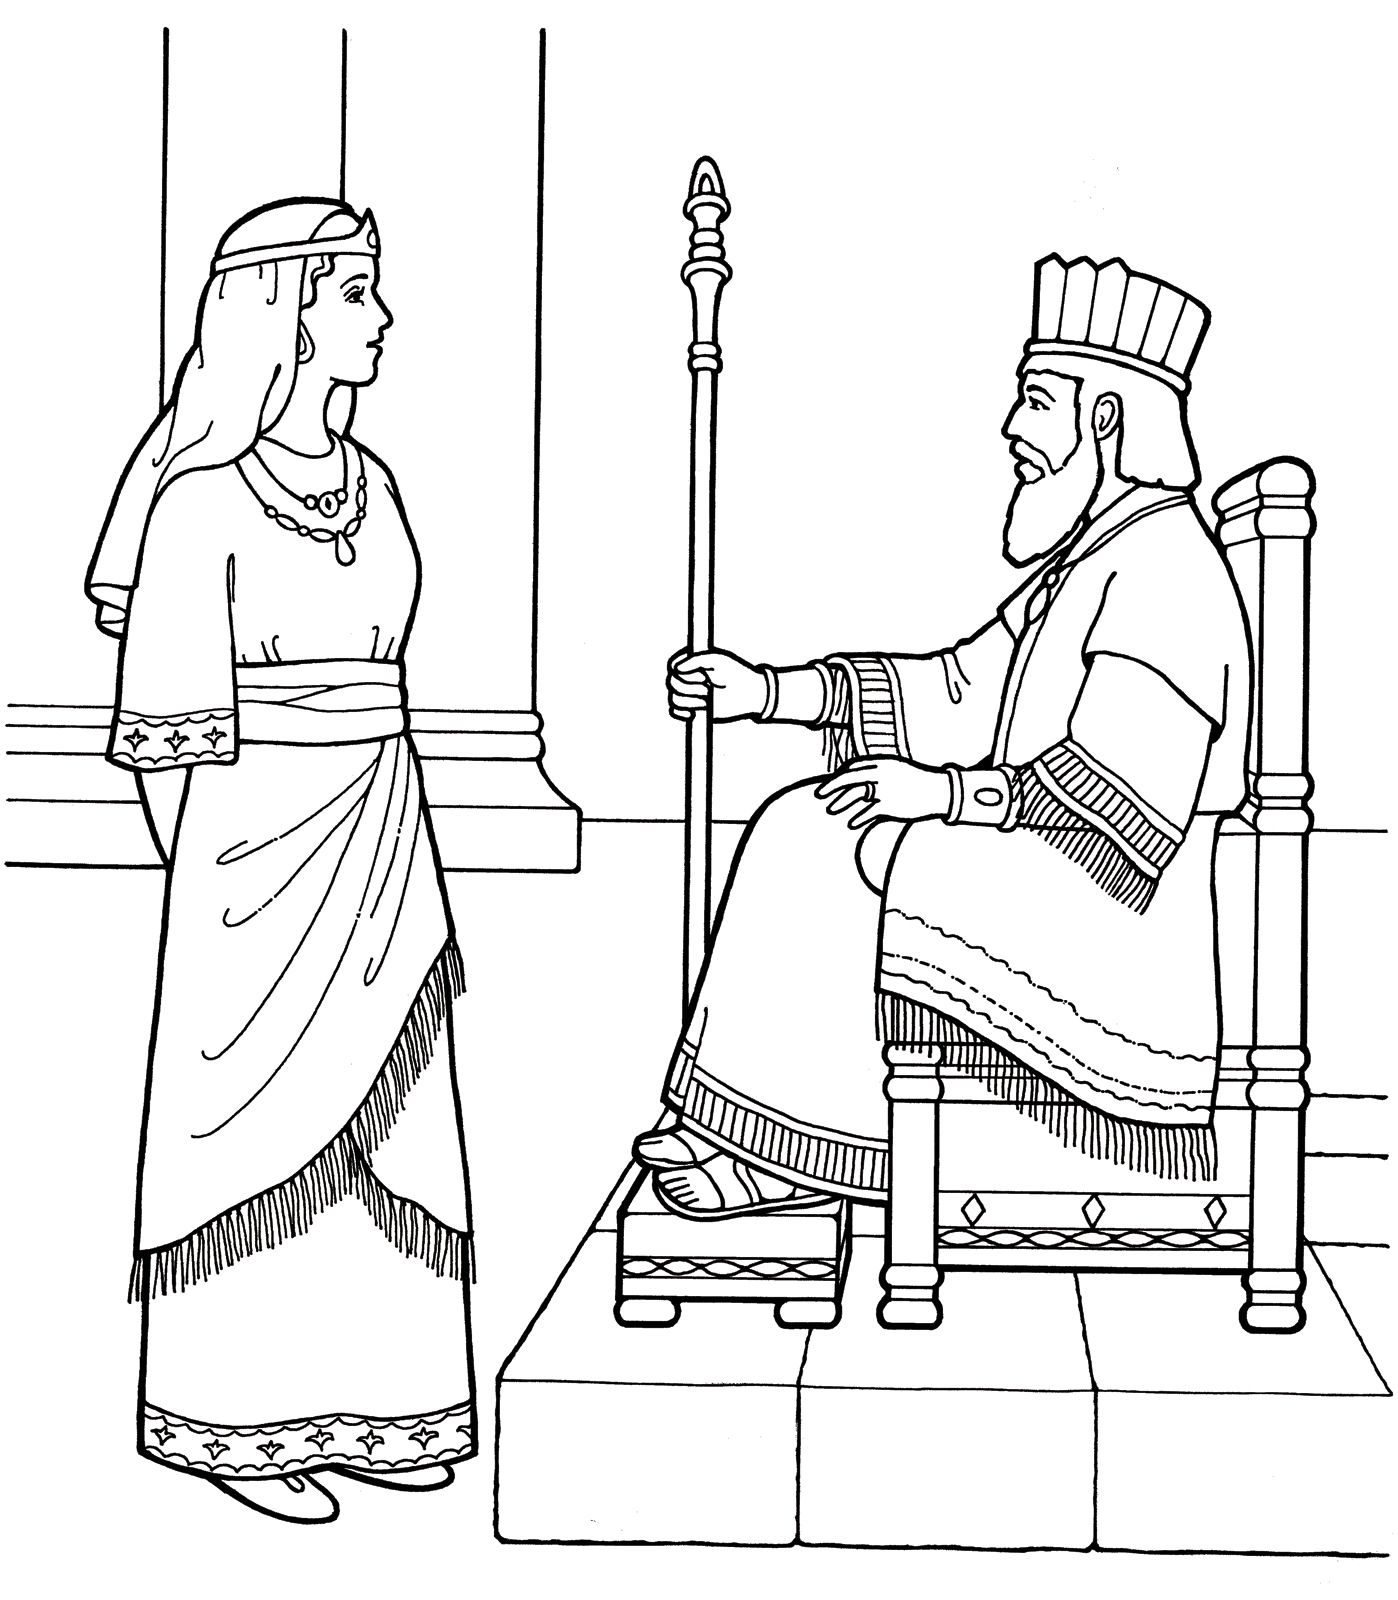 an lds primary coloring page from ldsorg queen esther with the king